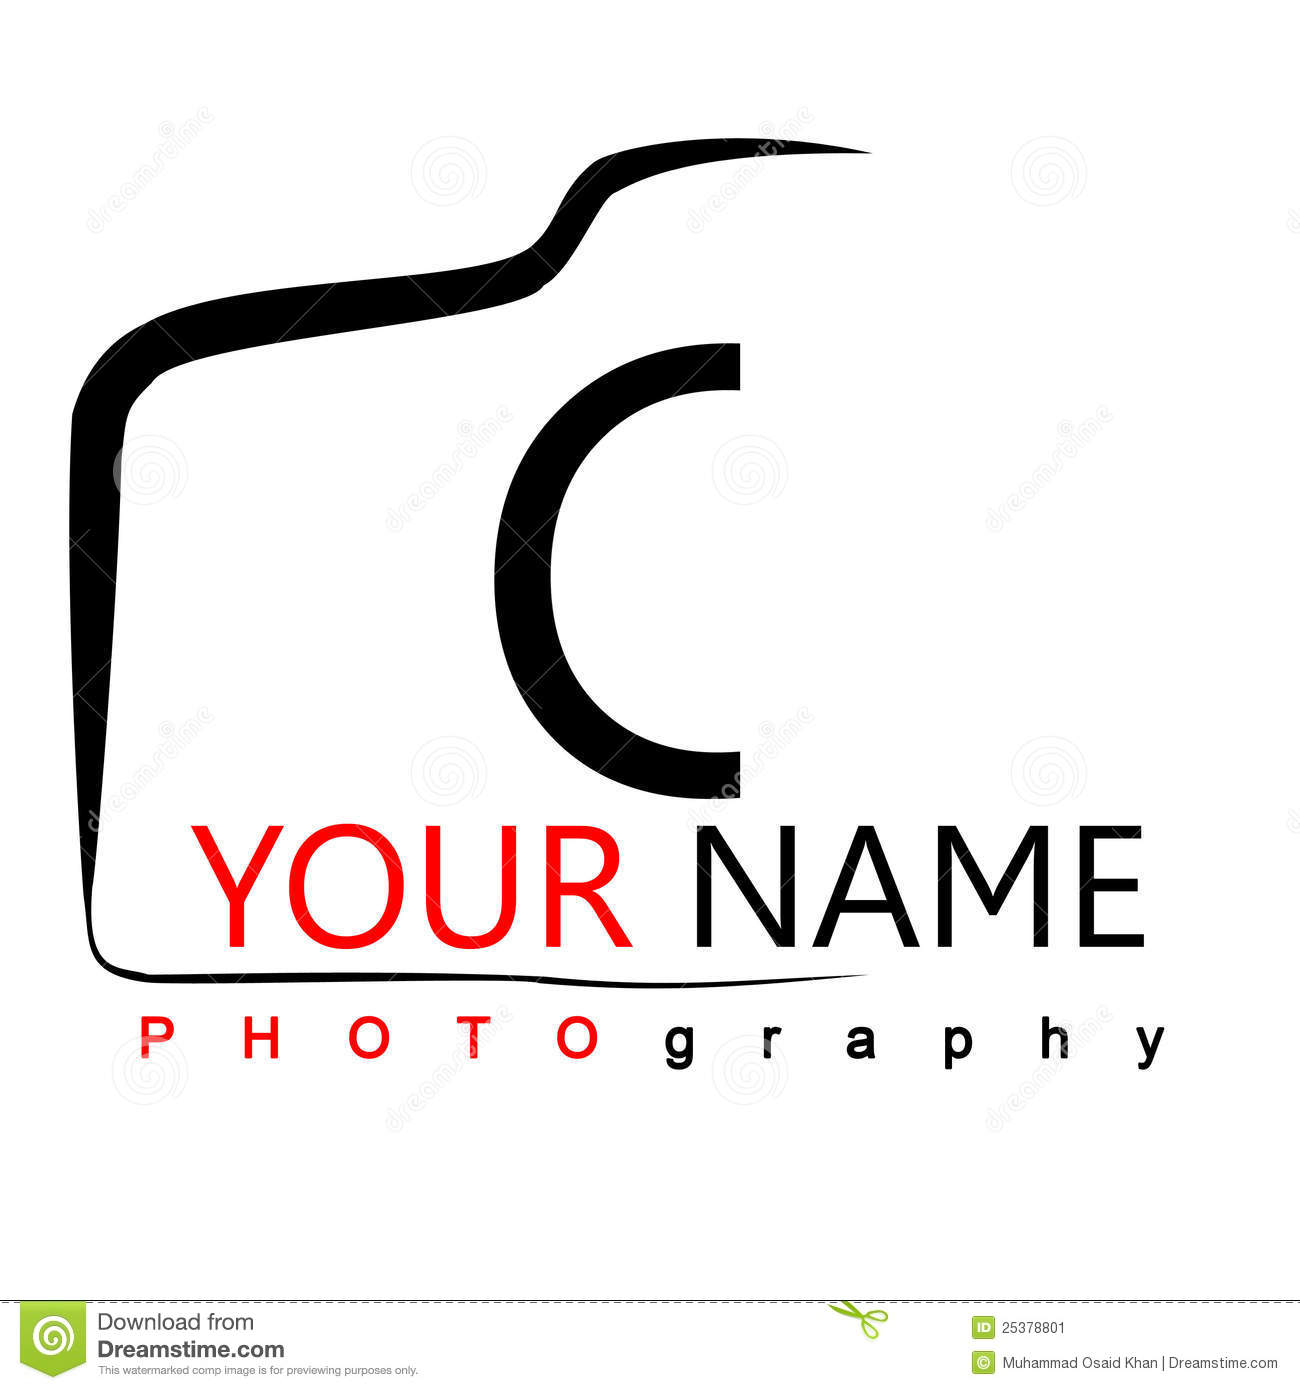 Camera Company Logo Camera photography logos